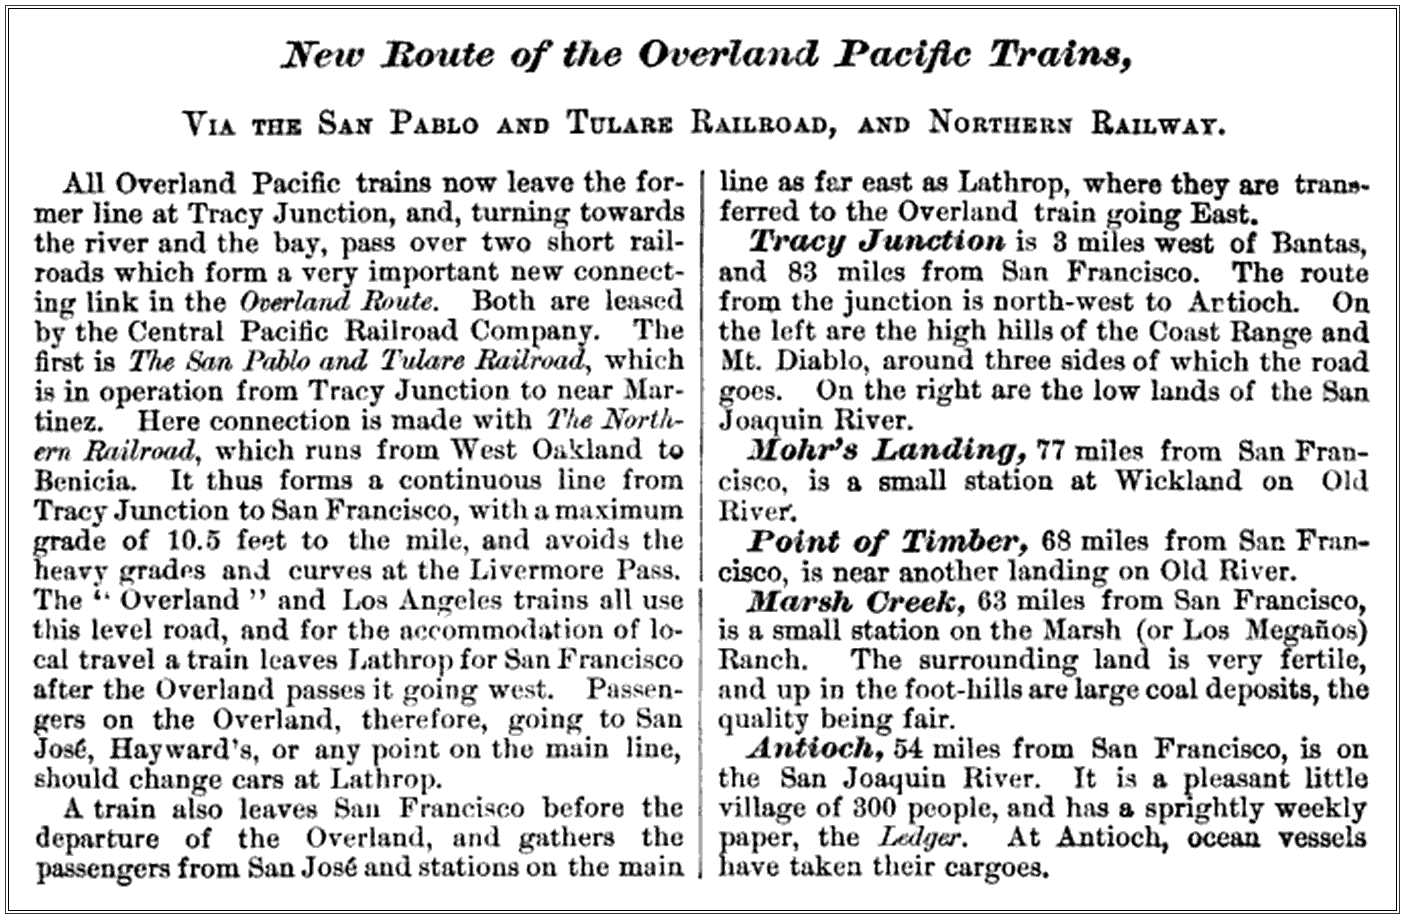 1878 Tracy Junction News Article (Image)